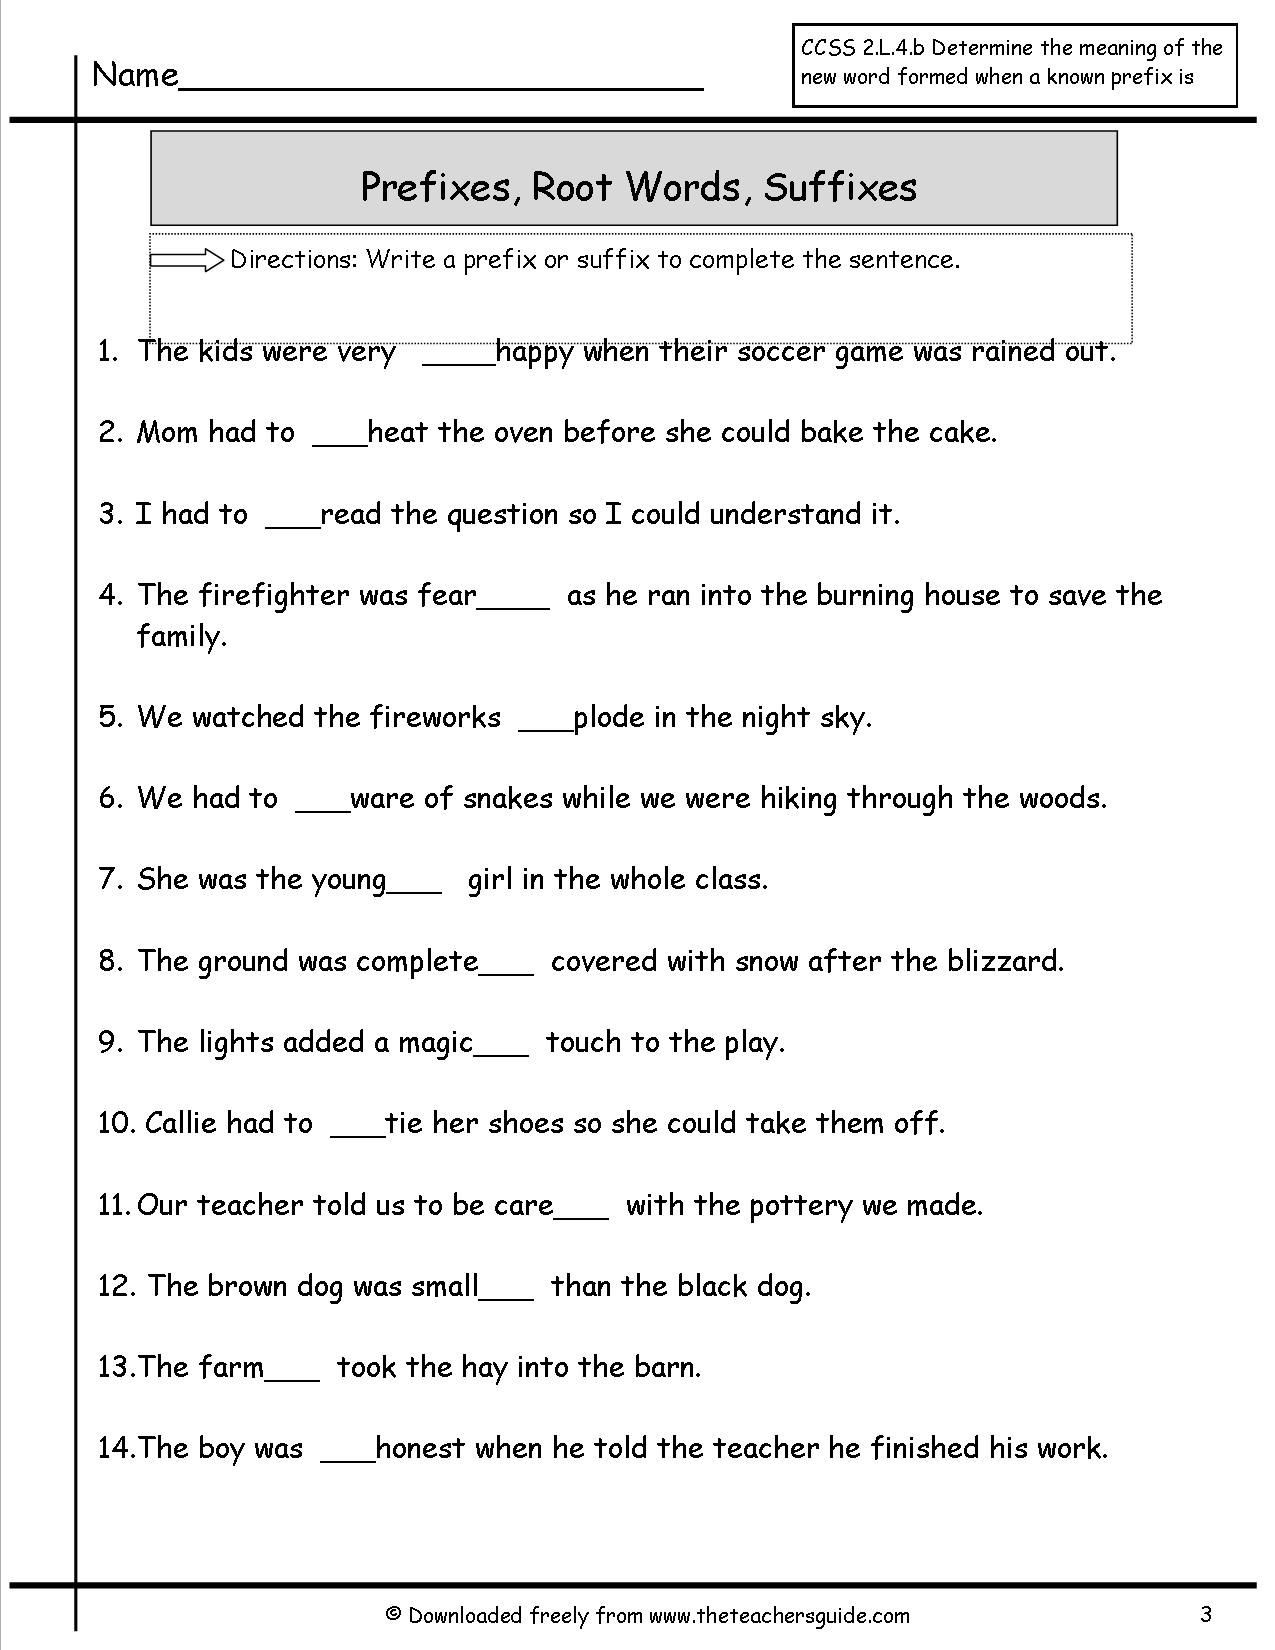 Suffix Worksheets Middle School Prefixes Suffixes Worksheet